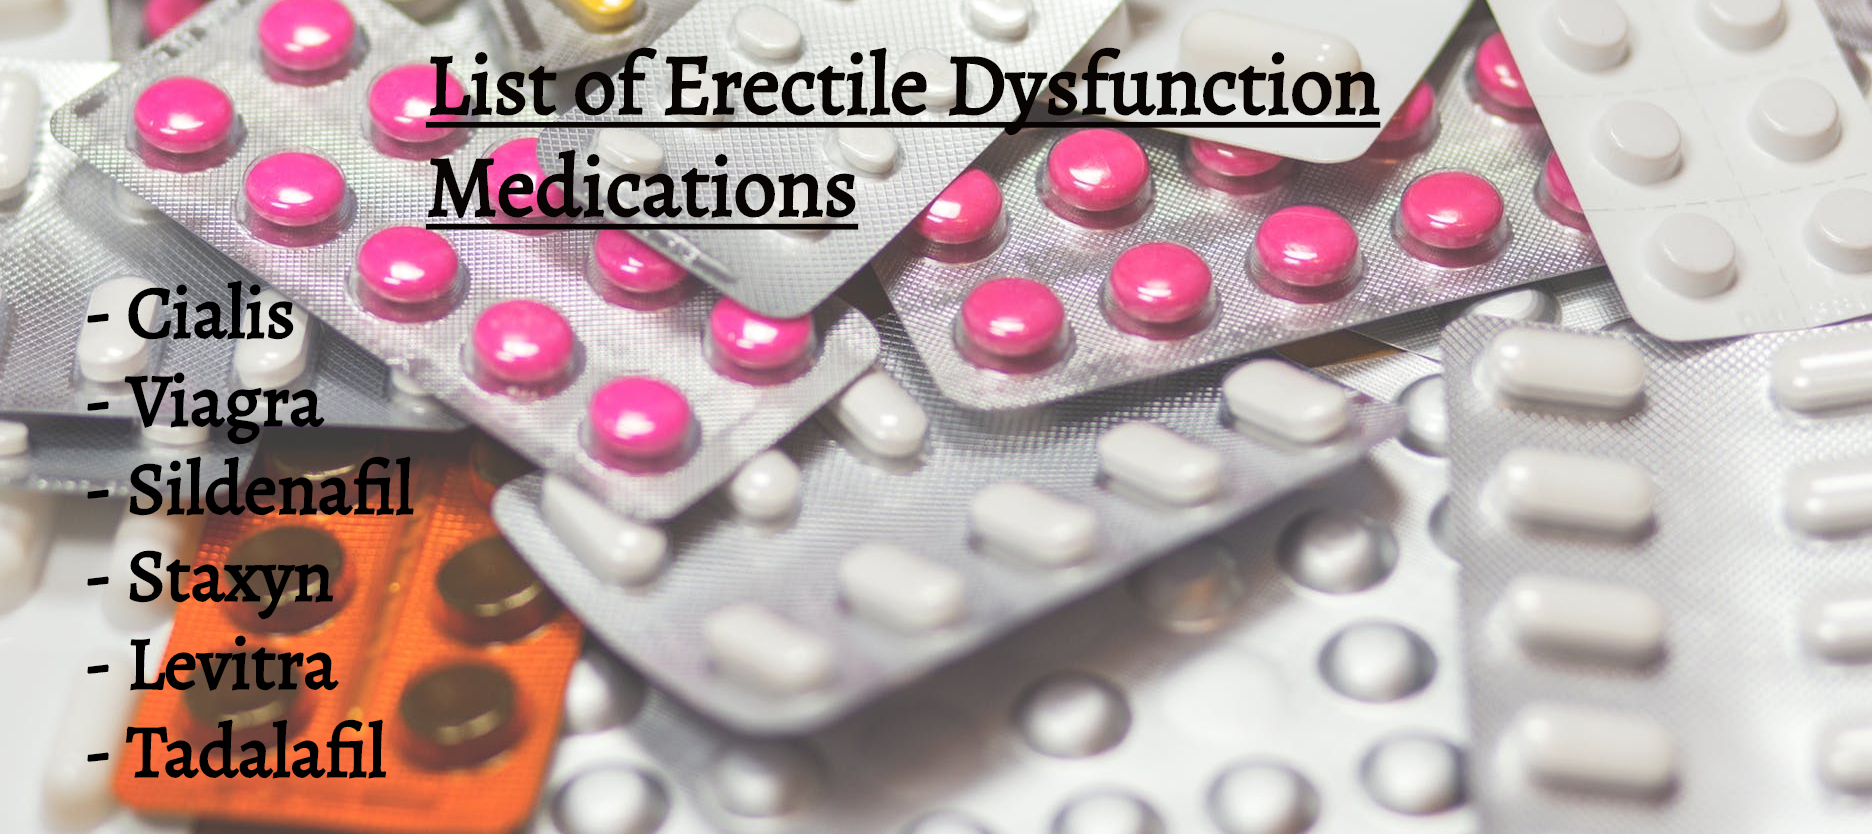 Medications for Ed